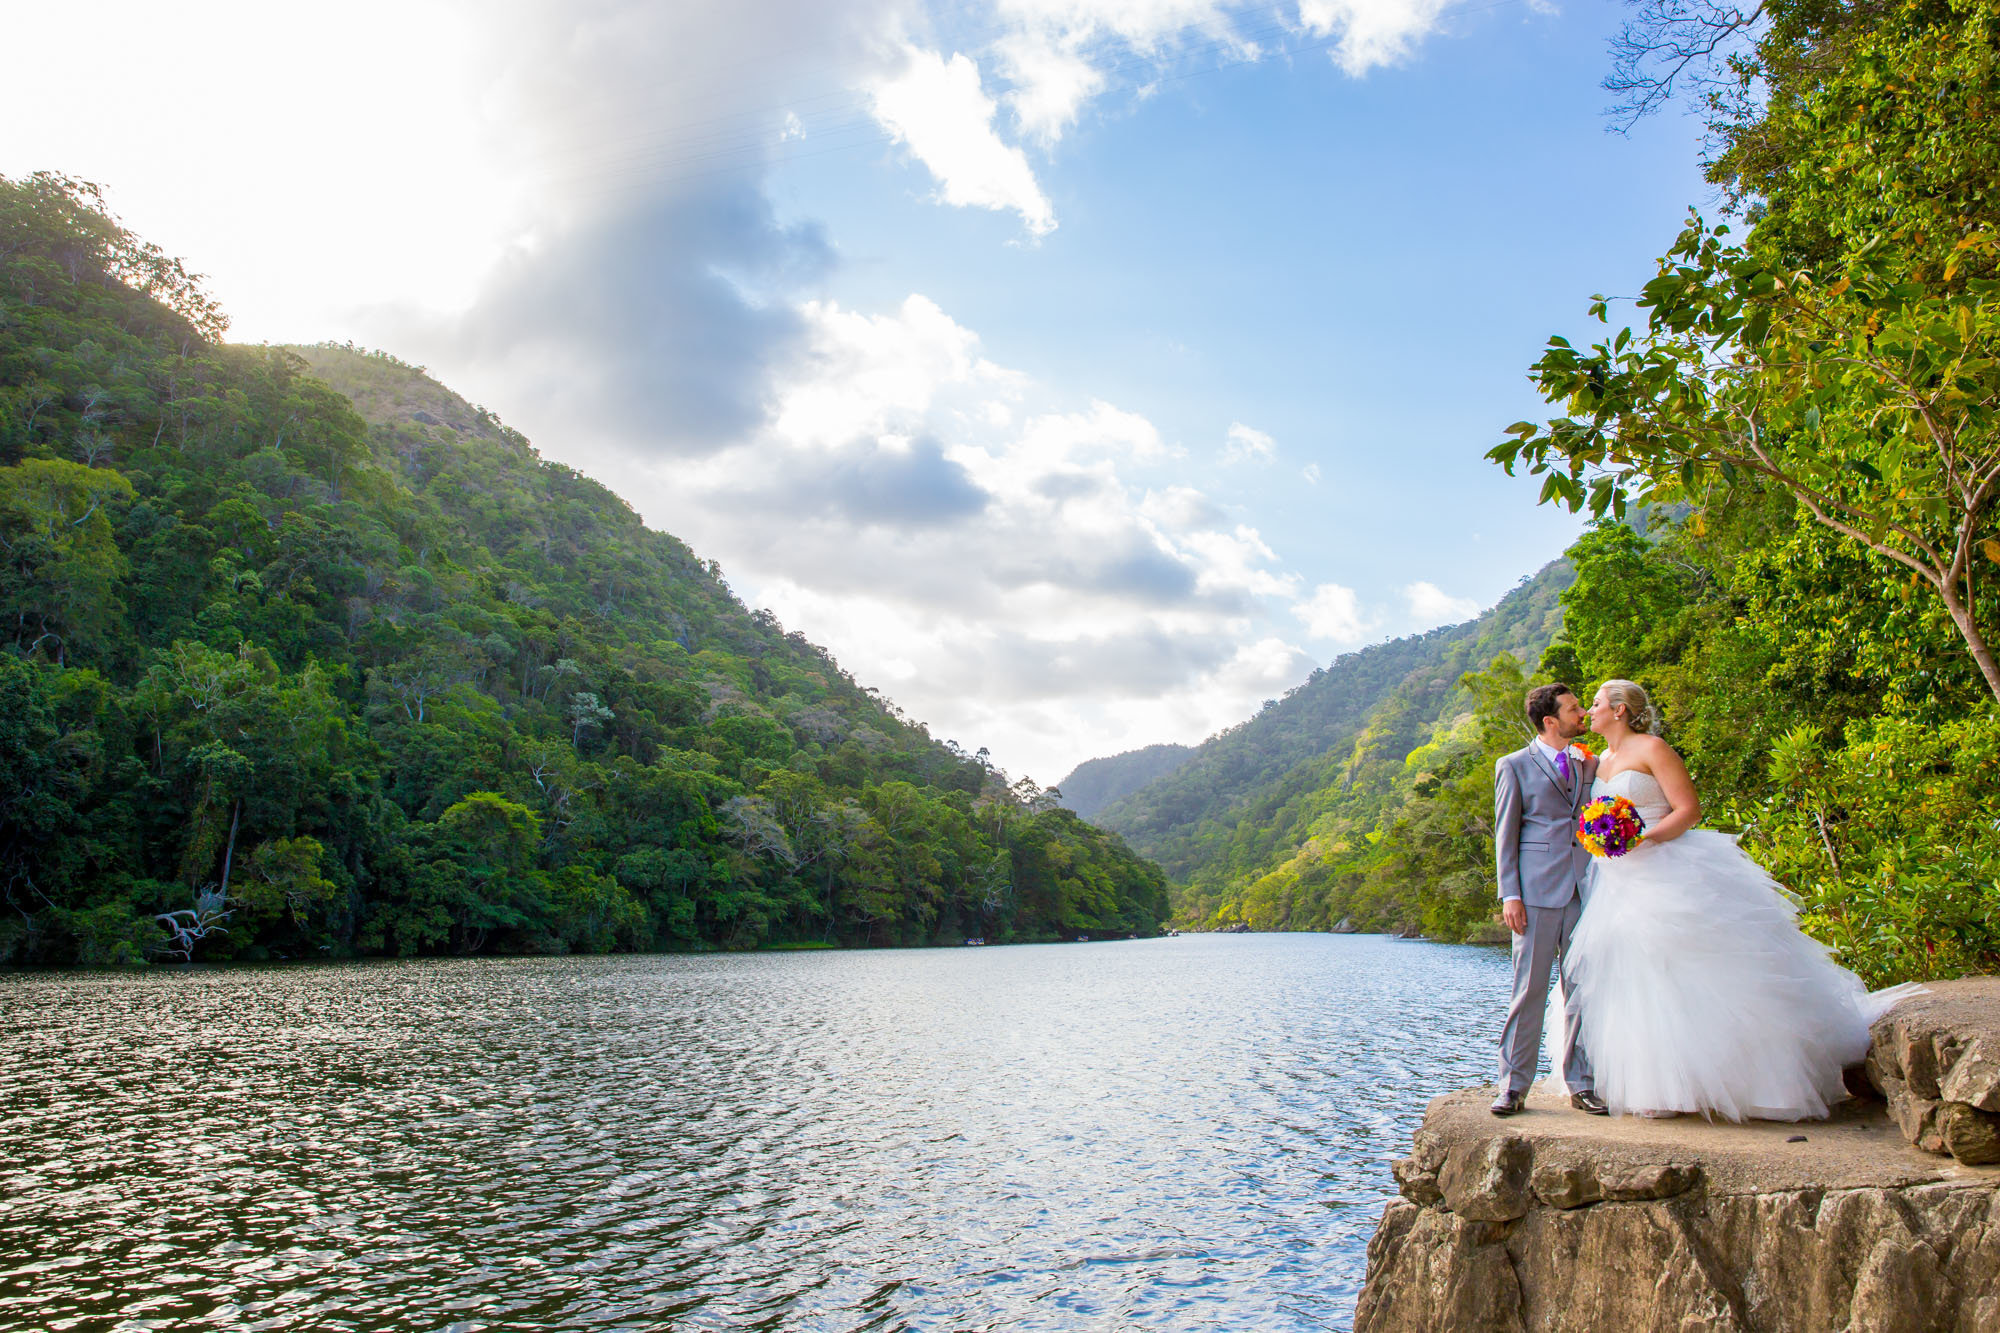 Lake Placid Wedding Photographer Cairns Anna Osetroff